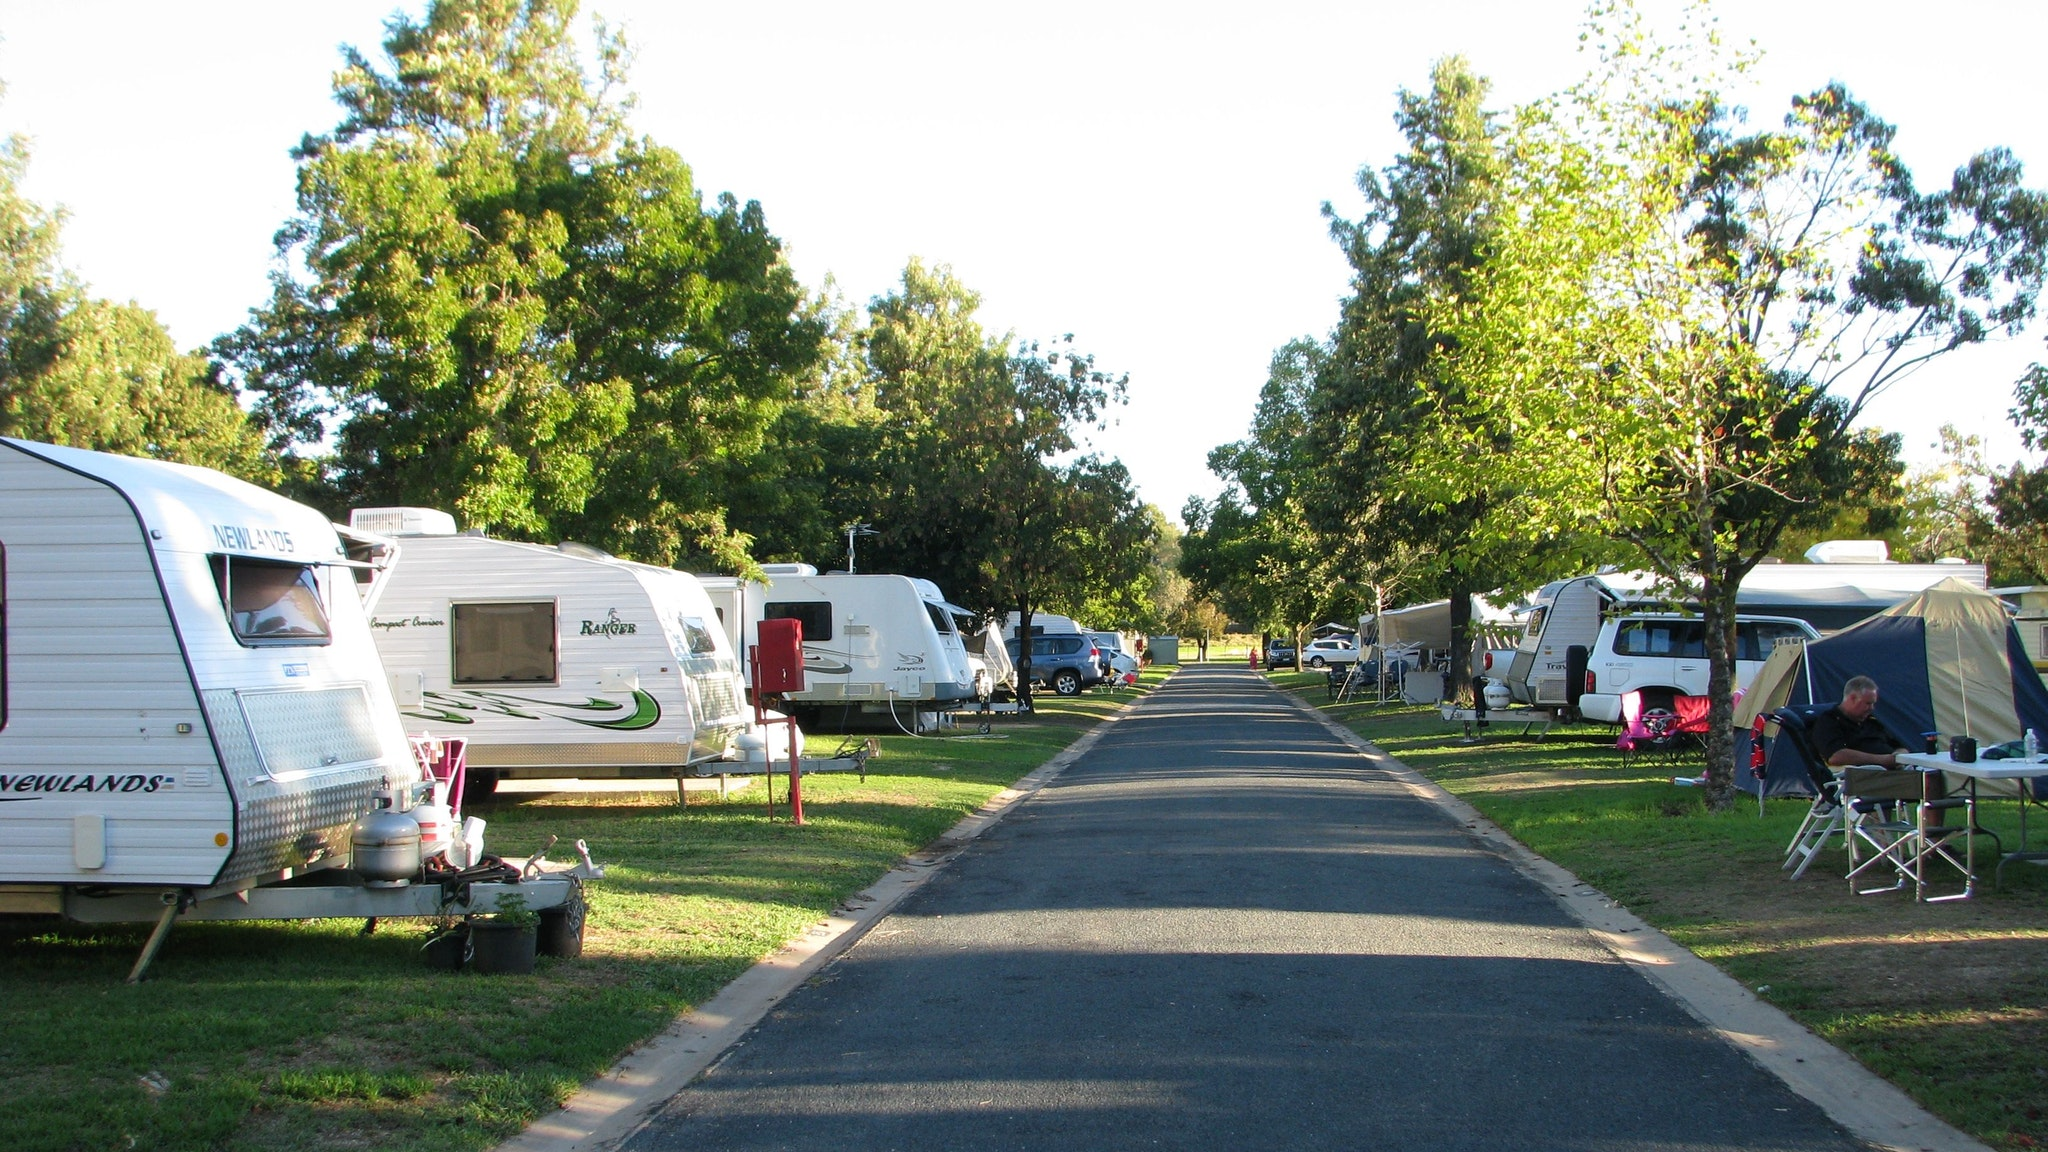 Some of the caravan sites